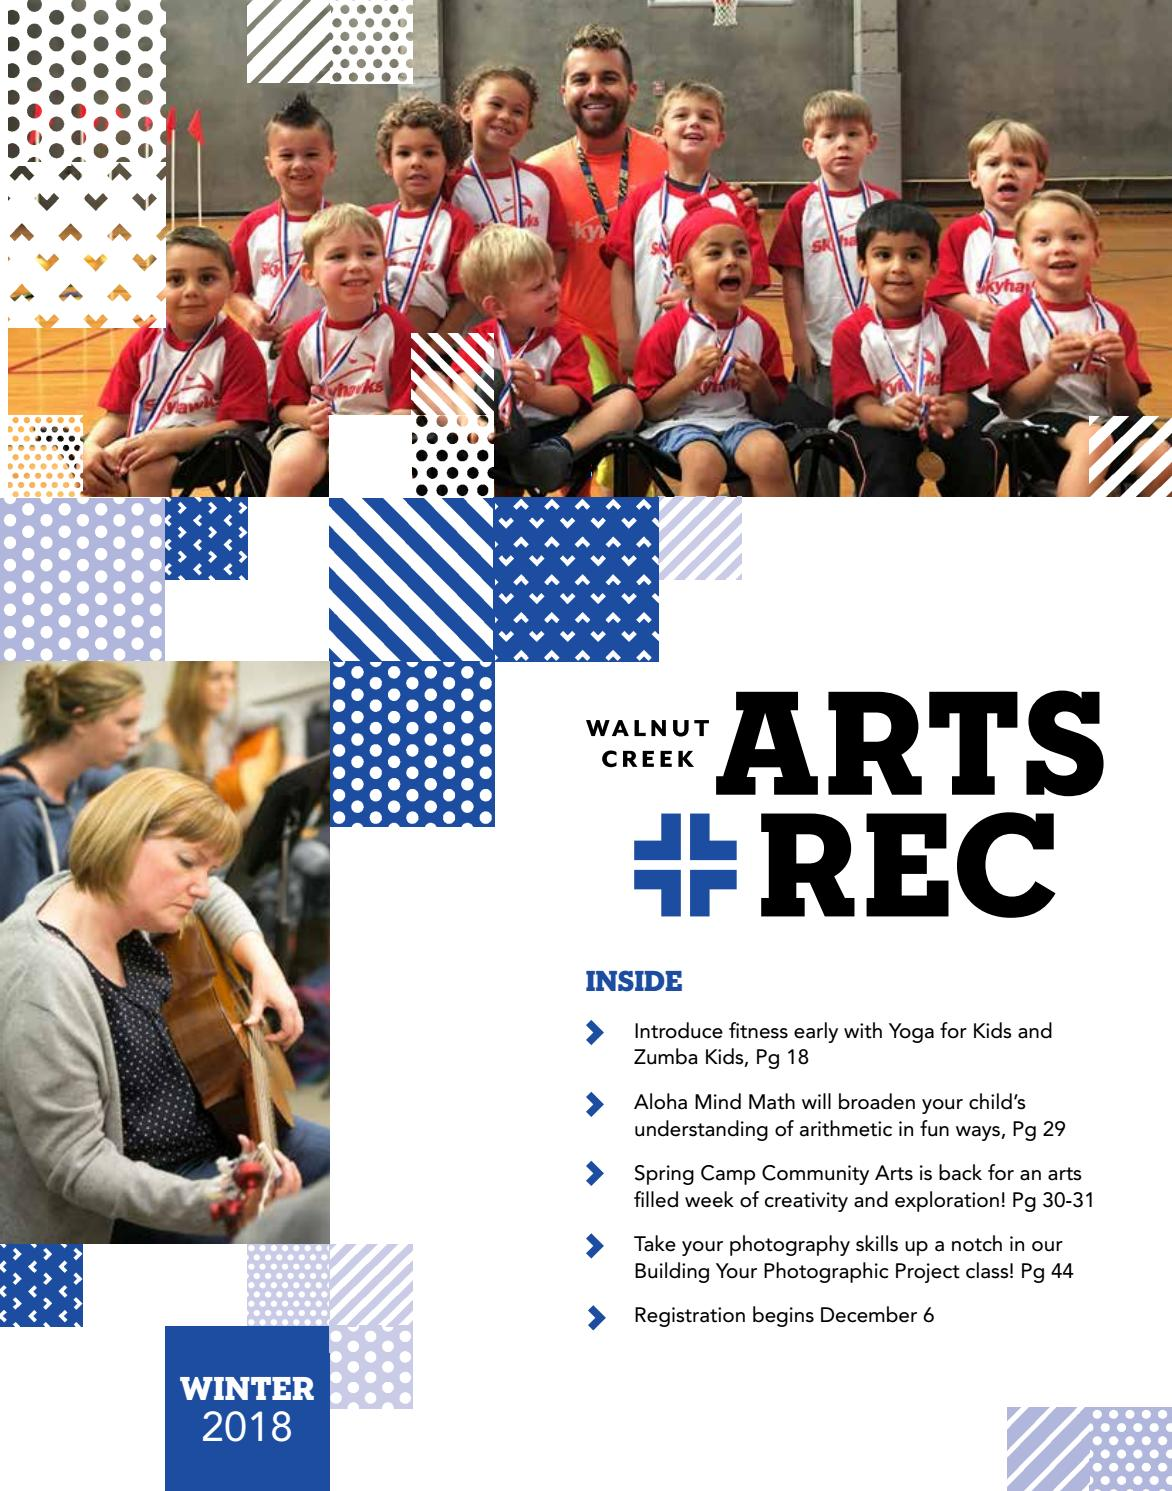 City Of Walnut Creek Guide To Arts Rec Spring 2017 By Key West Boat Fuse Box Winter 2018